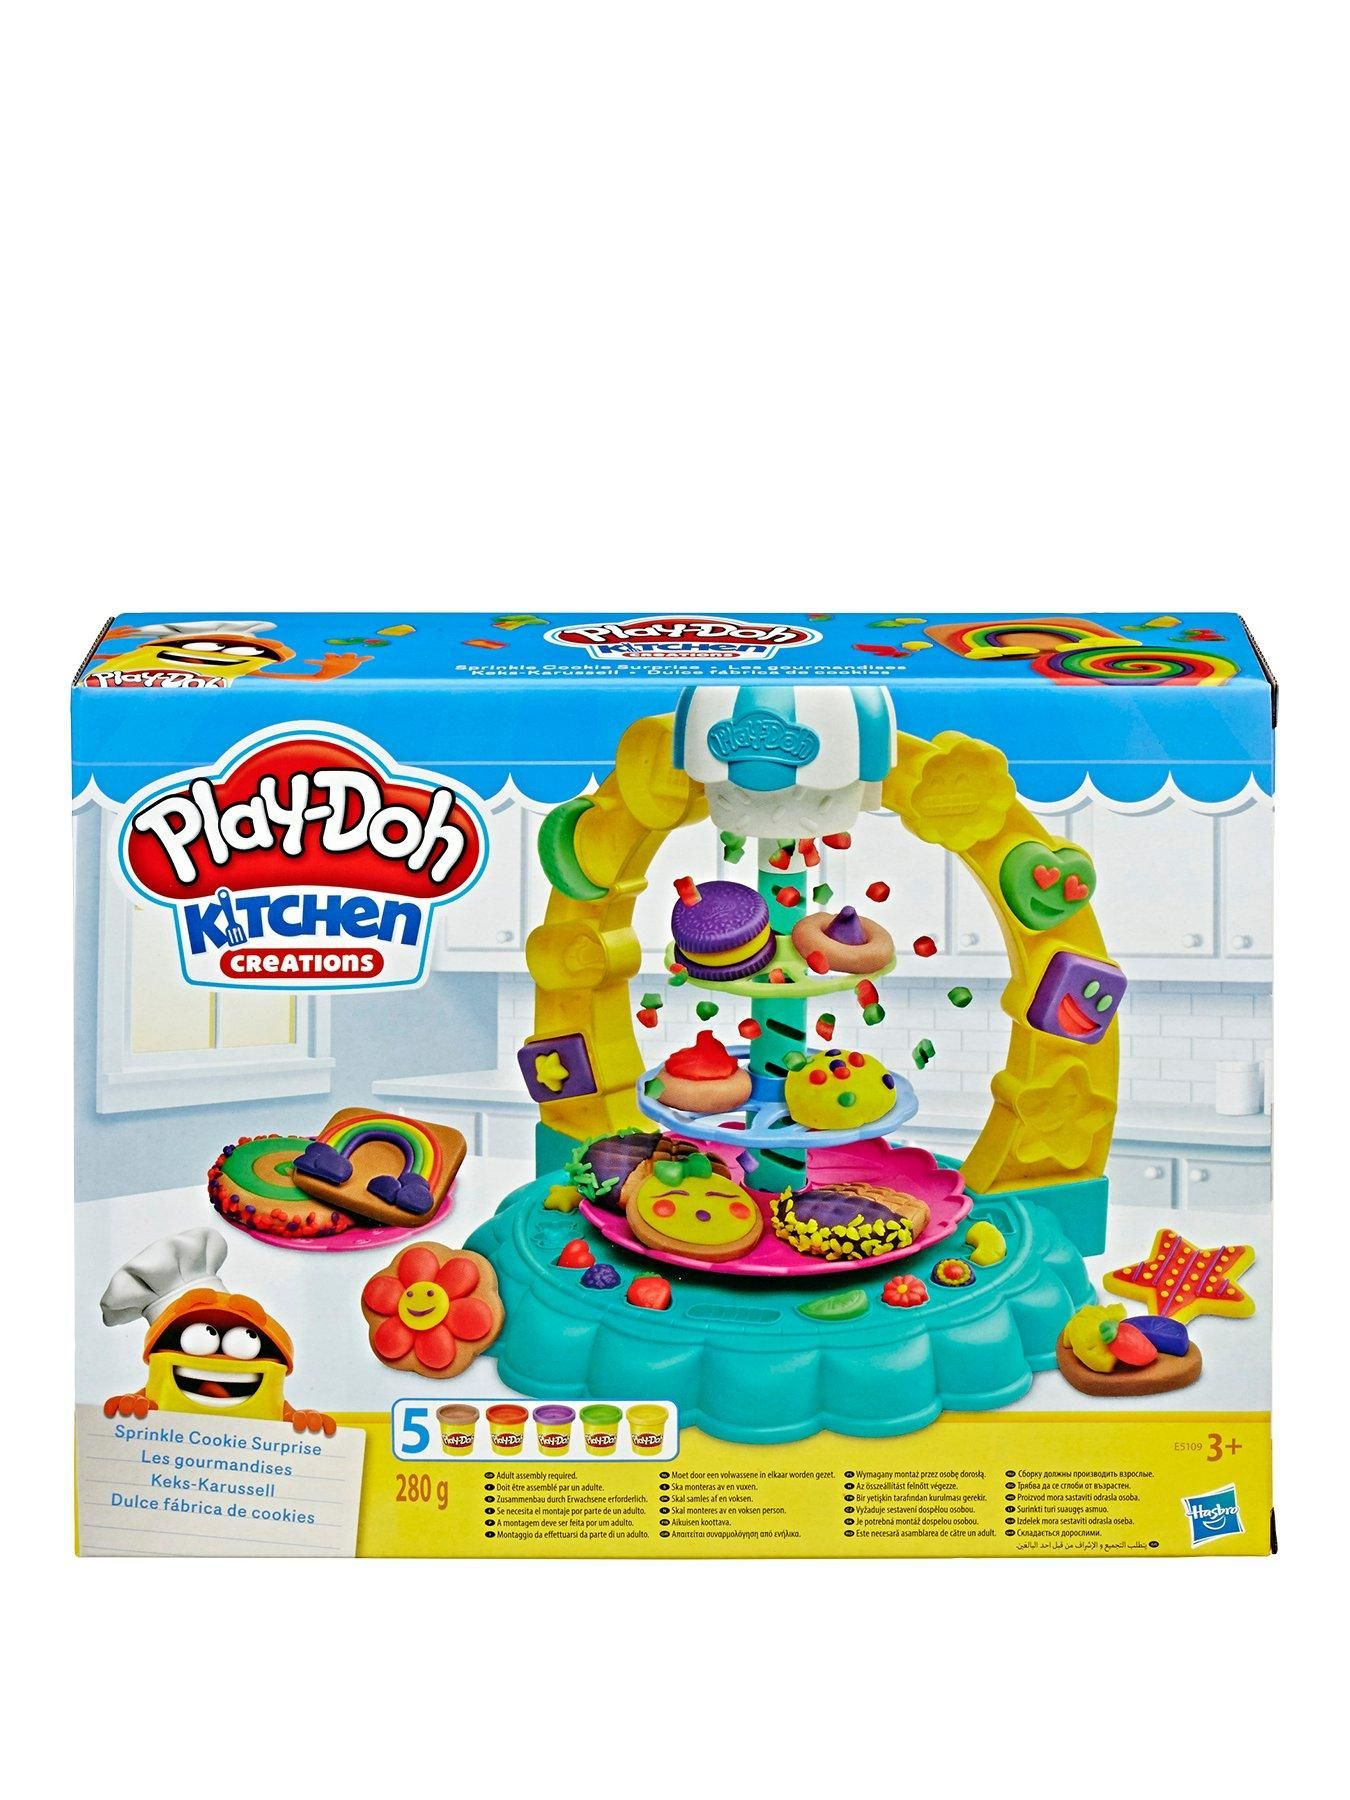 PlayDoh Kitchen Creations Sprinkle Cookie Surprise Play